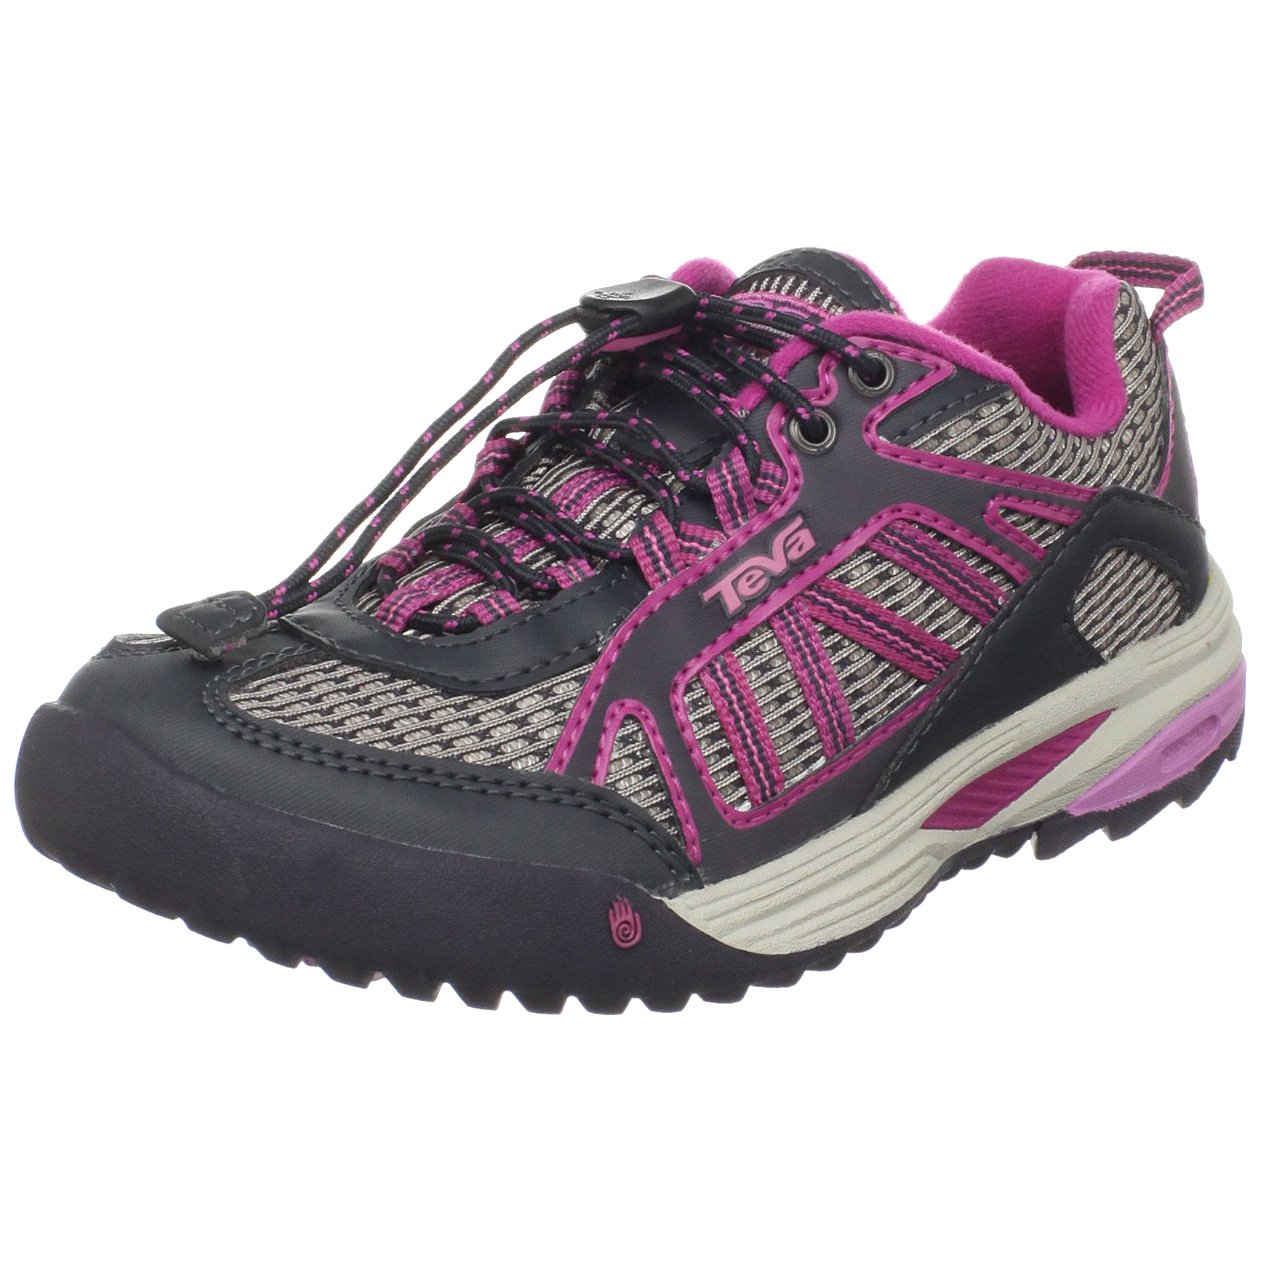 Teva Kids' Berry,3 Charge Active Outdoor Lace Up,Very Berry,3 Kids' M US Little Kid e153c6